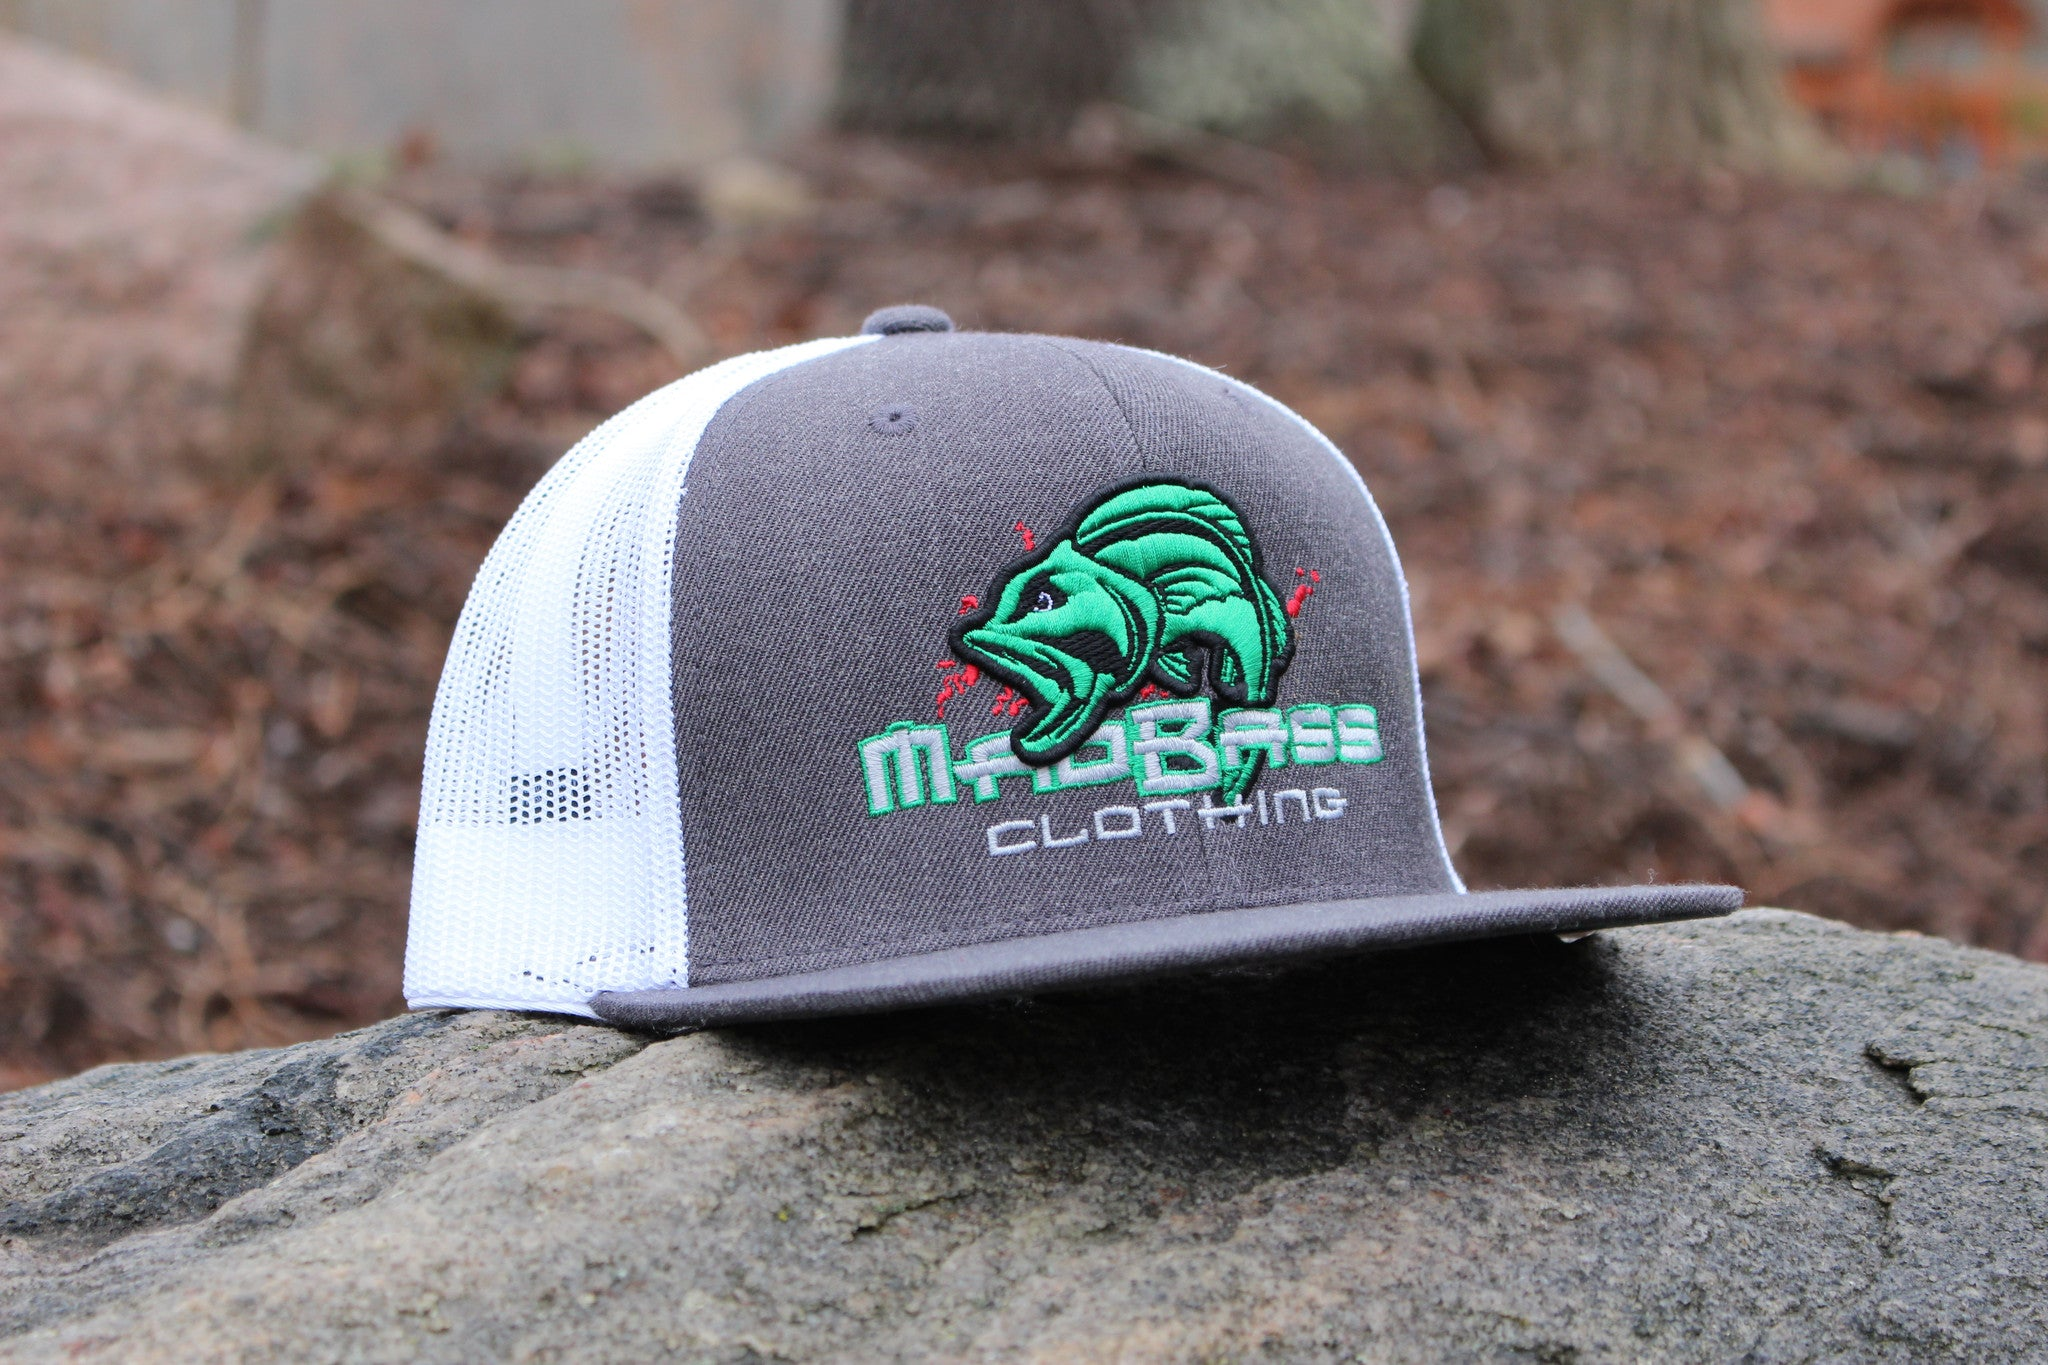 Mad bass flatbill snapback hats mad bass clothing for Fishing flat bill hats